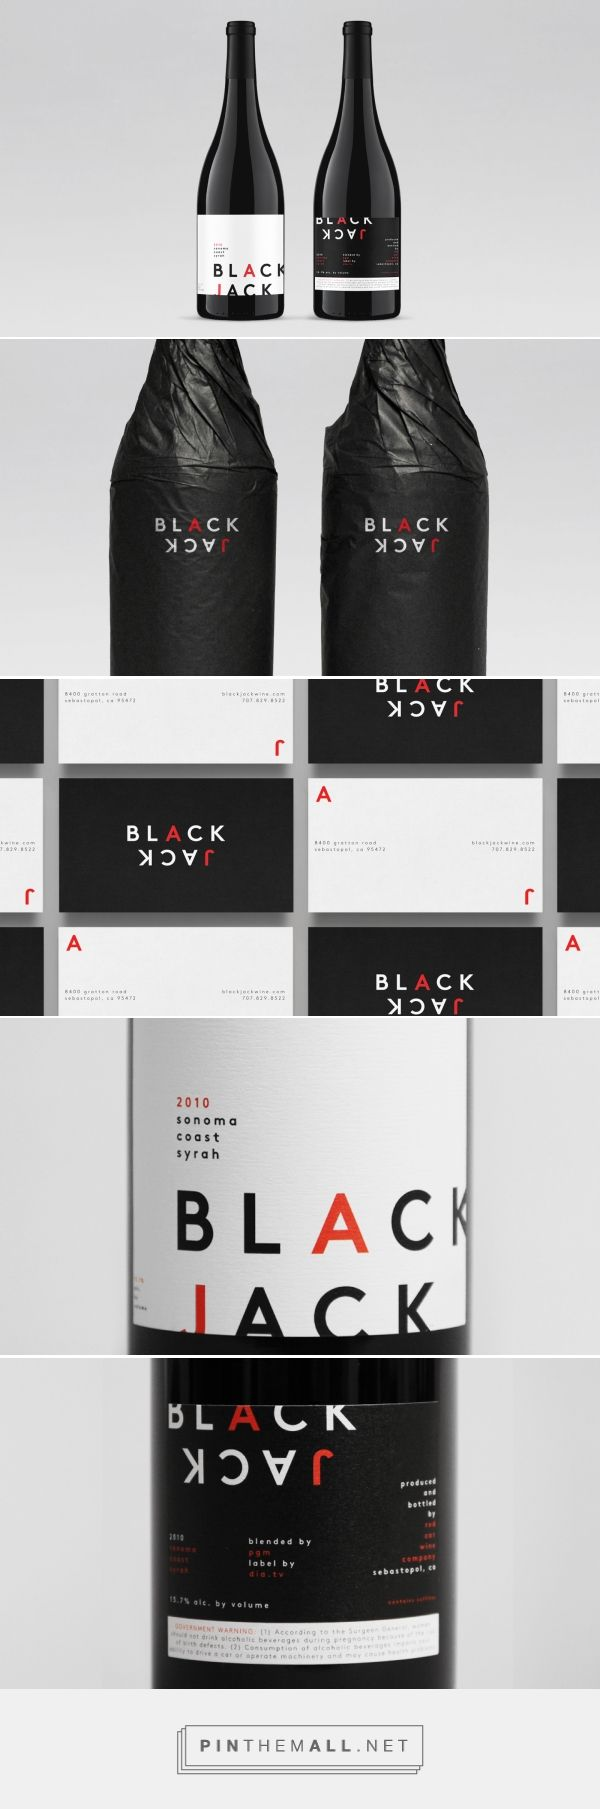 Black Jack — DIA — curated by Packaging Diva PD. Very clever packaging branding for a new wine label. Rightside up upside down PD created via http://dia.tv/black-jack/